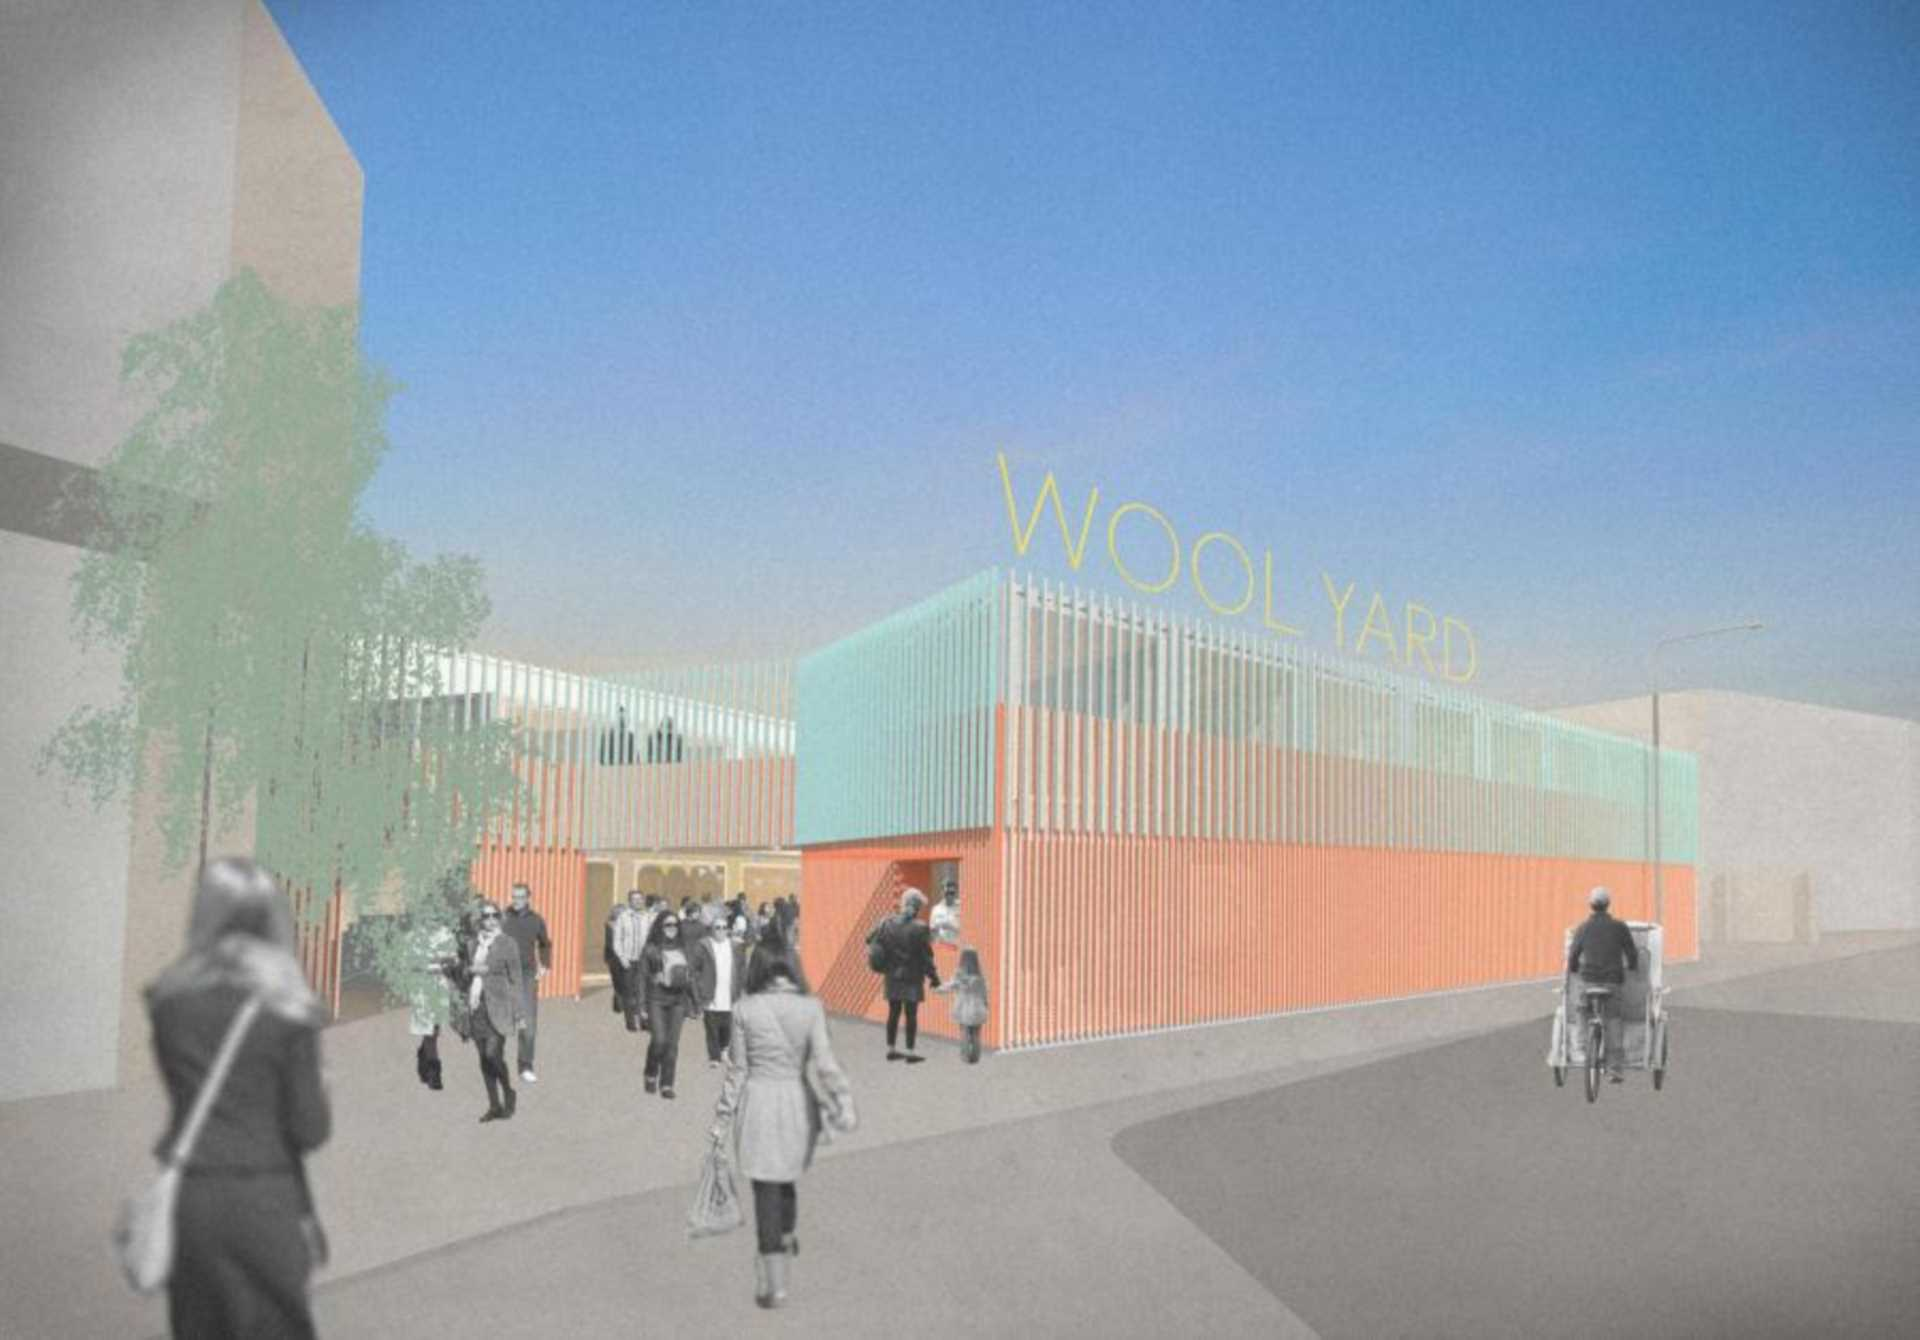 Plans for Wool Yard in Woolwich